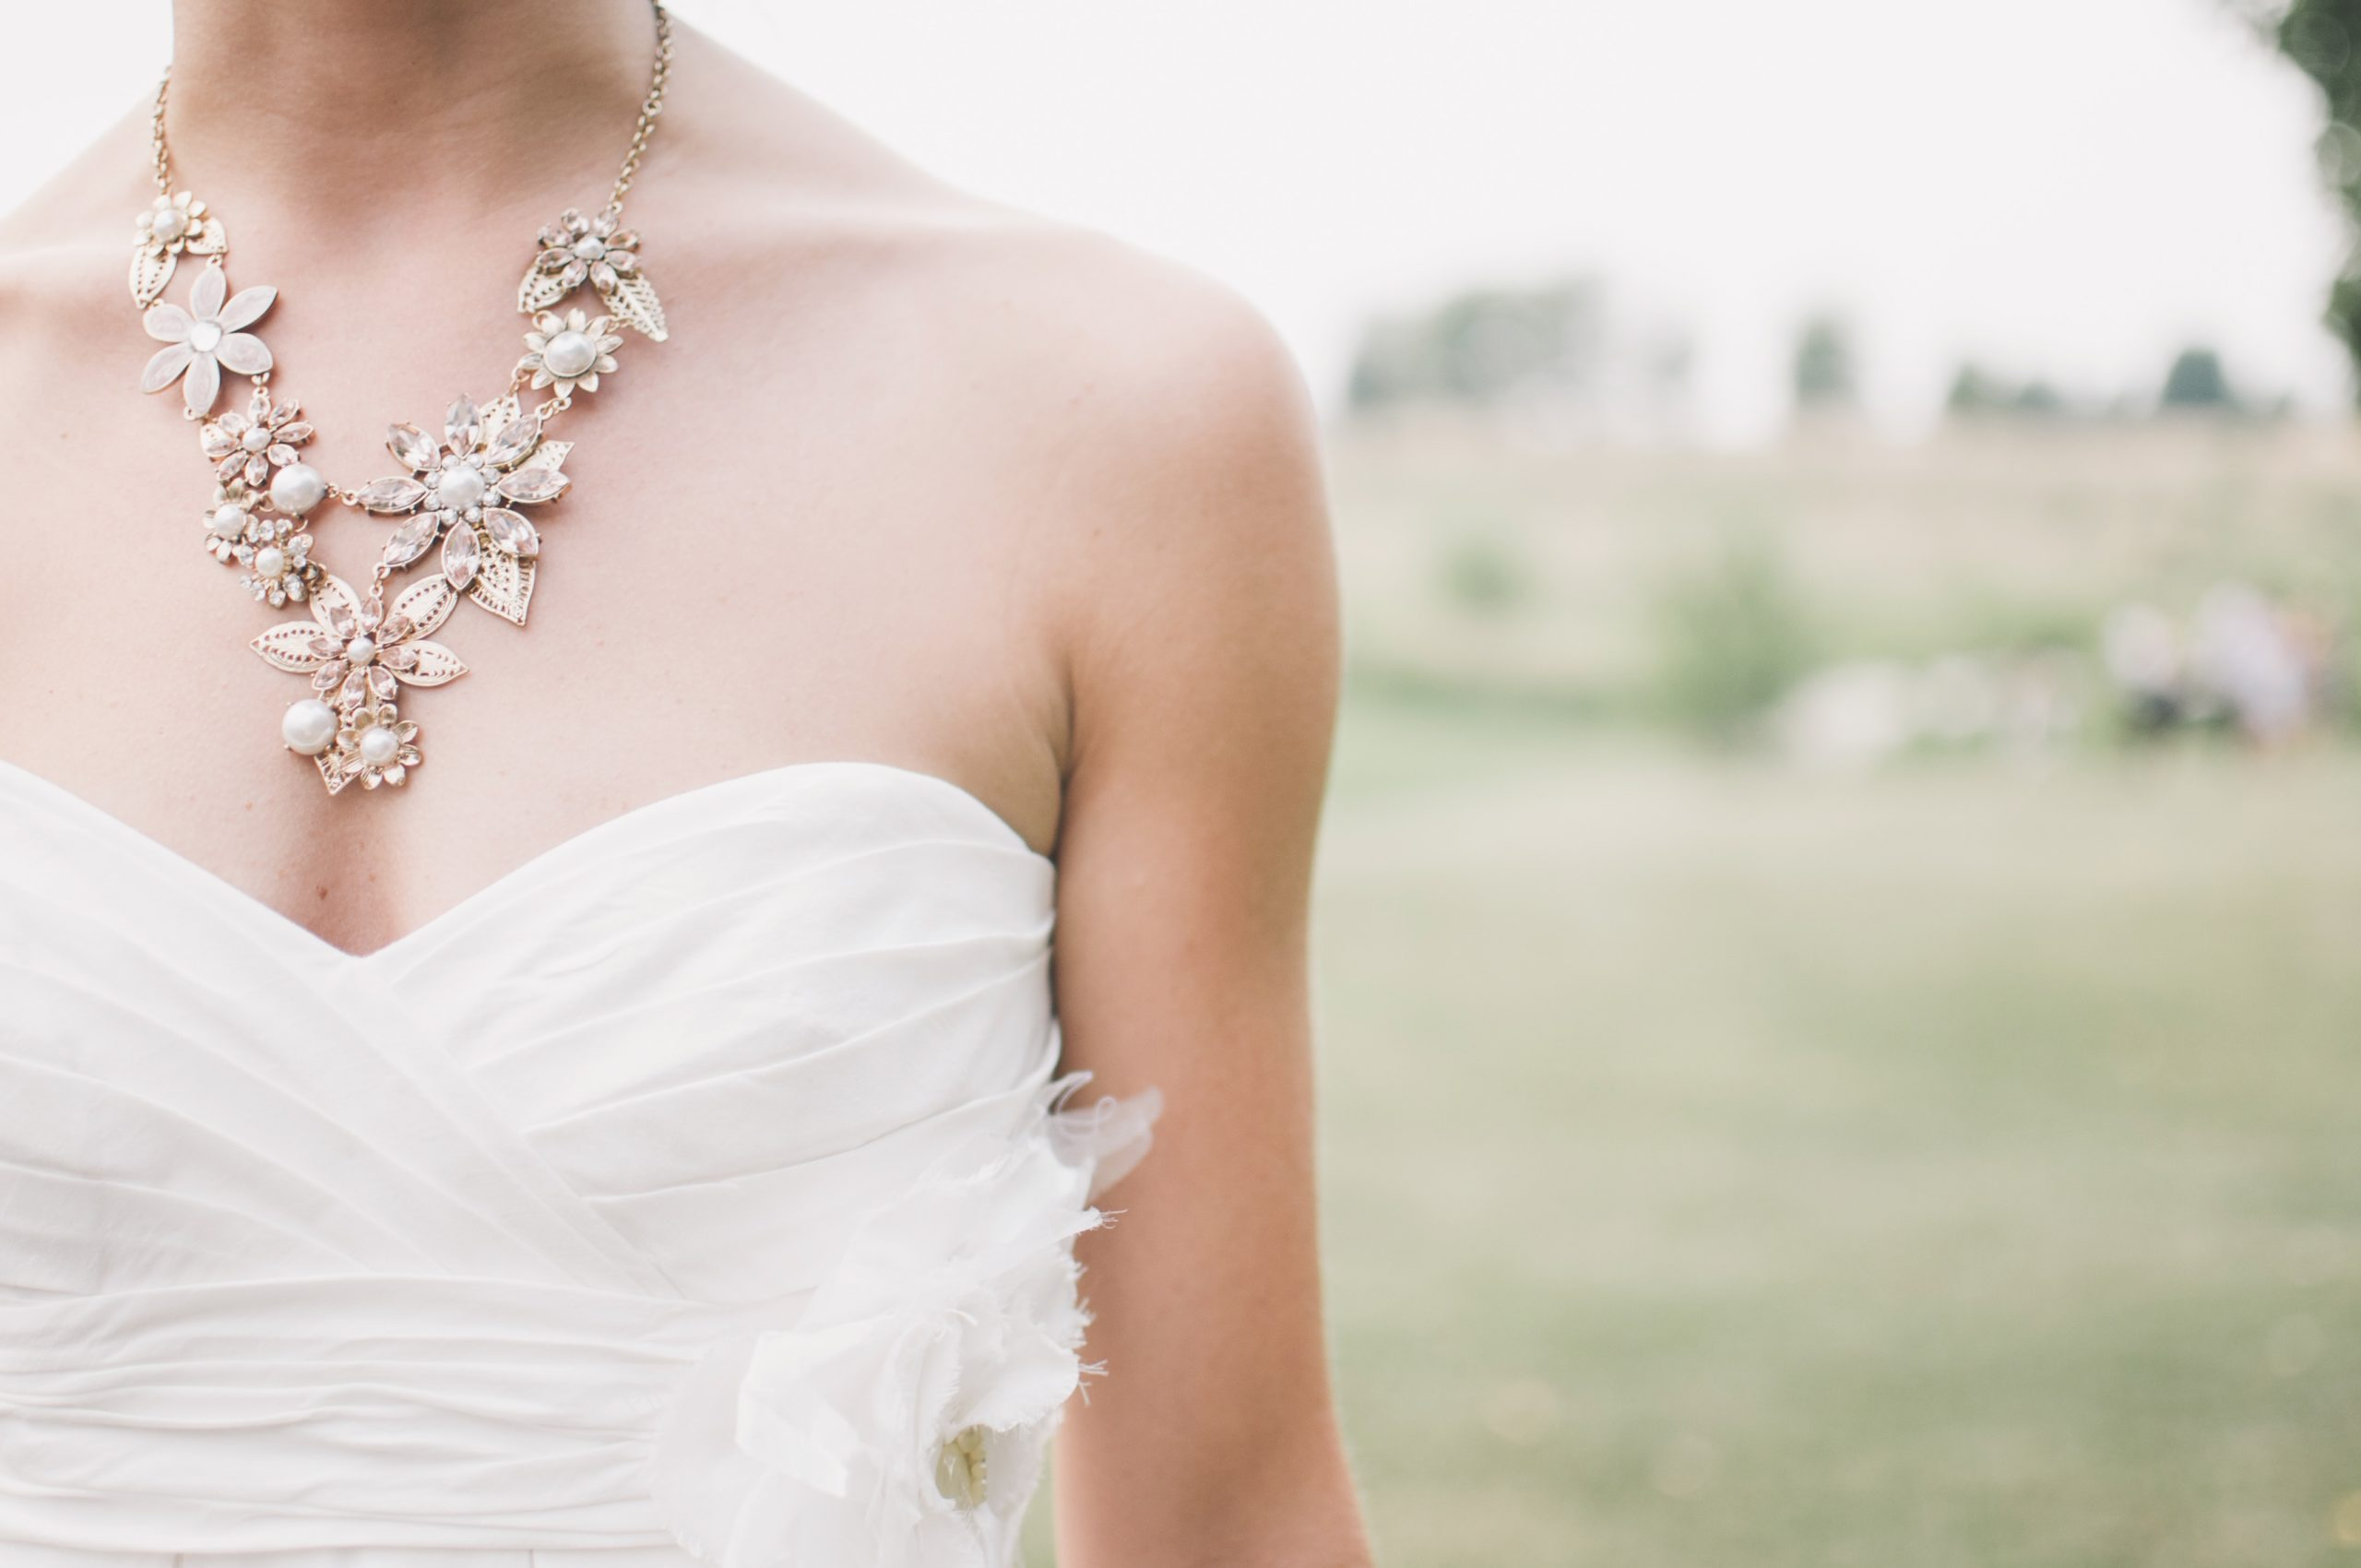 Top Rules For Accessorizing Your Wedding Dress